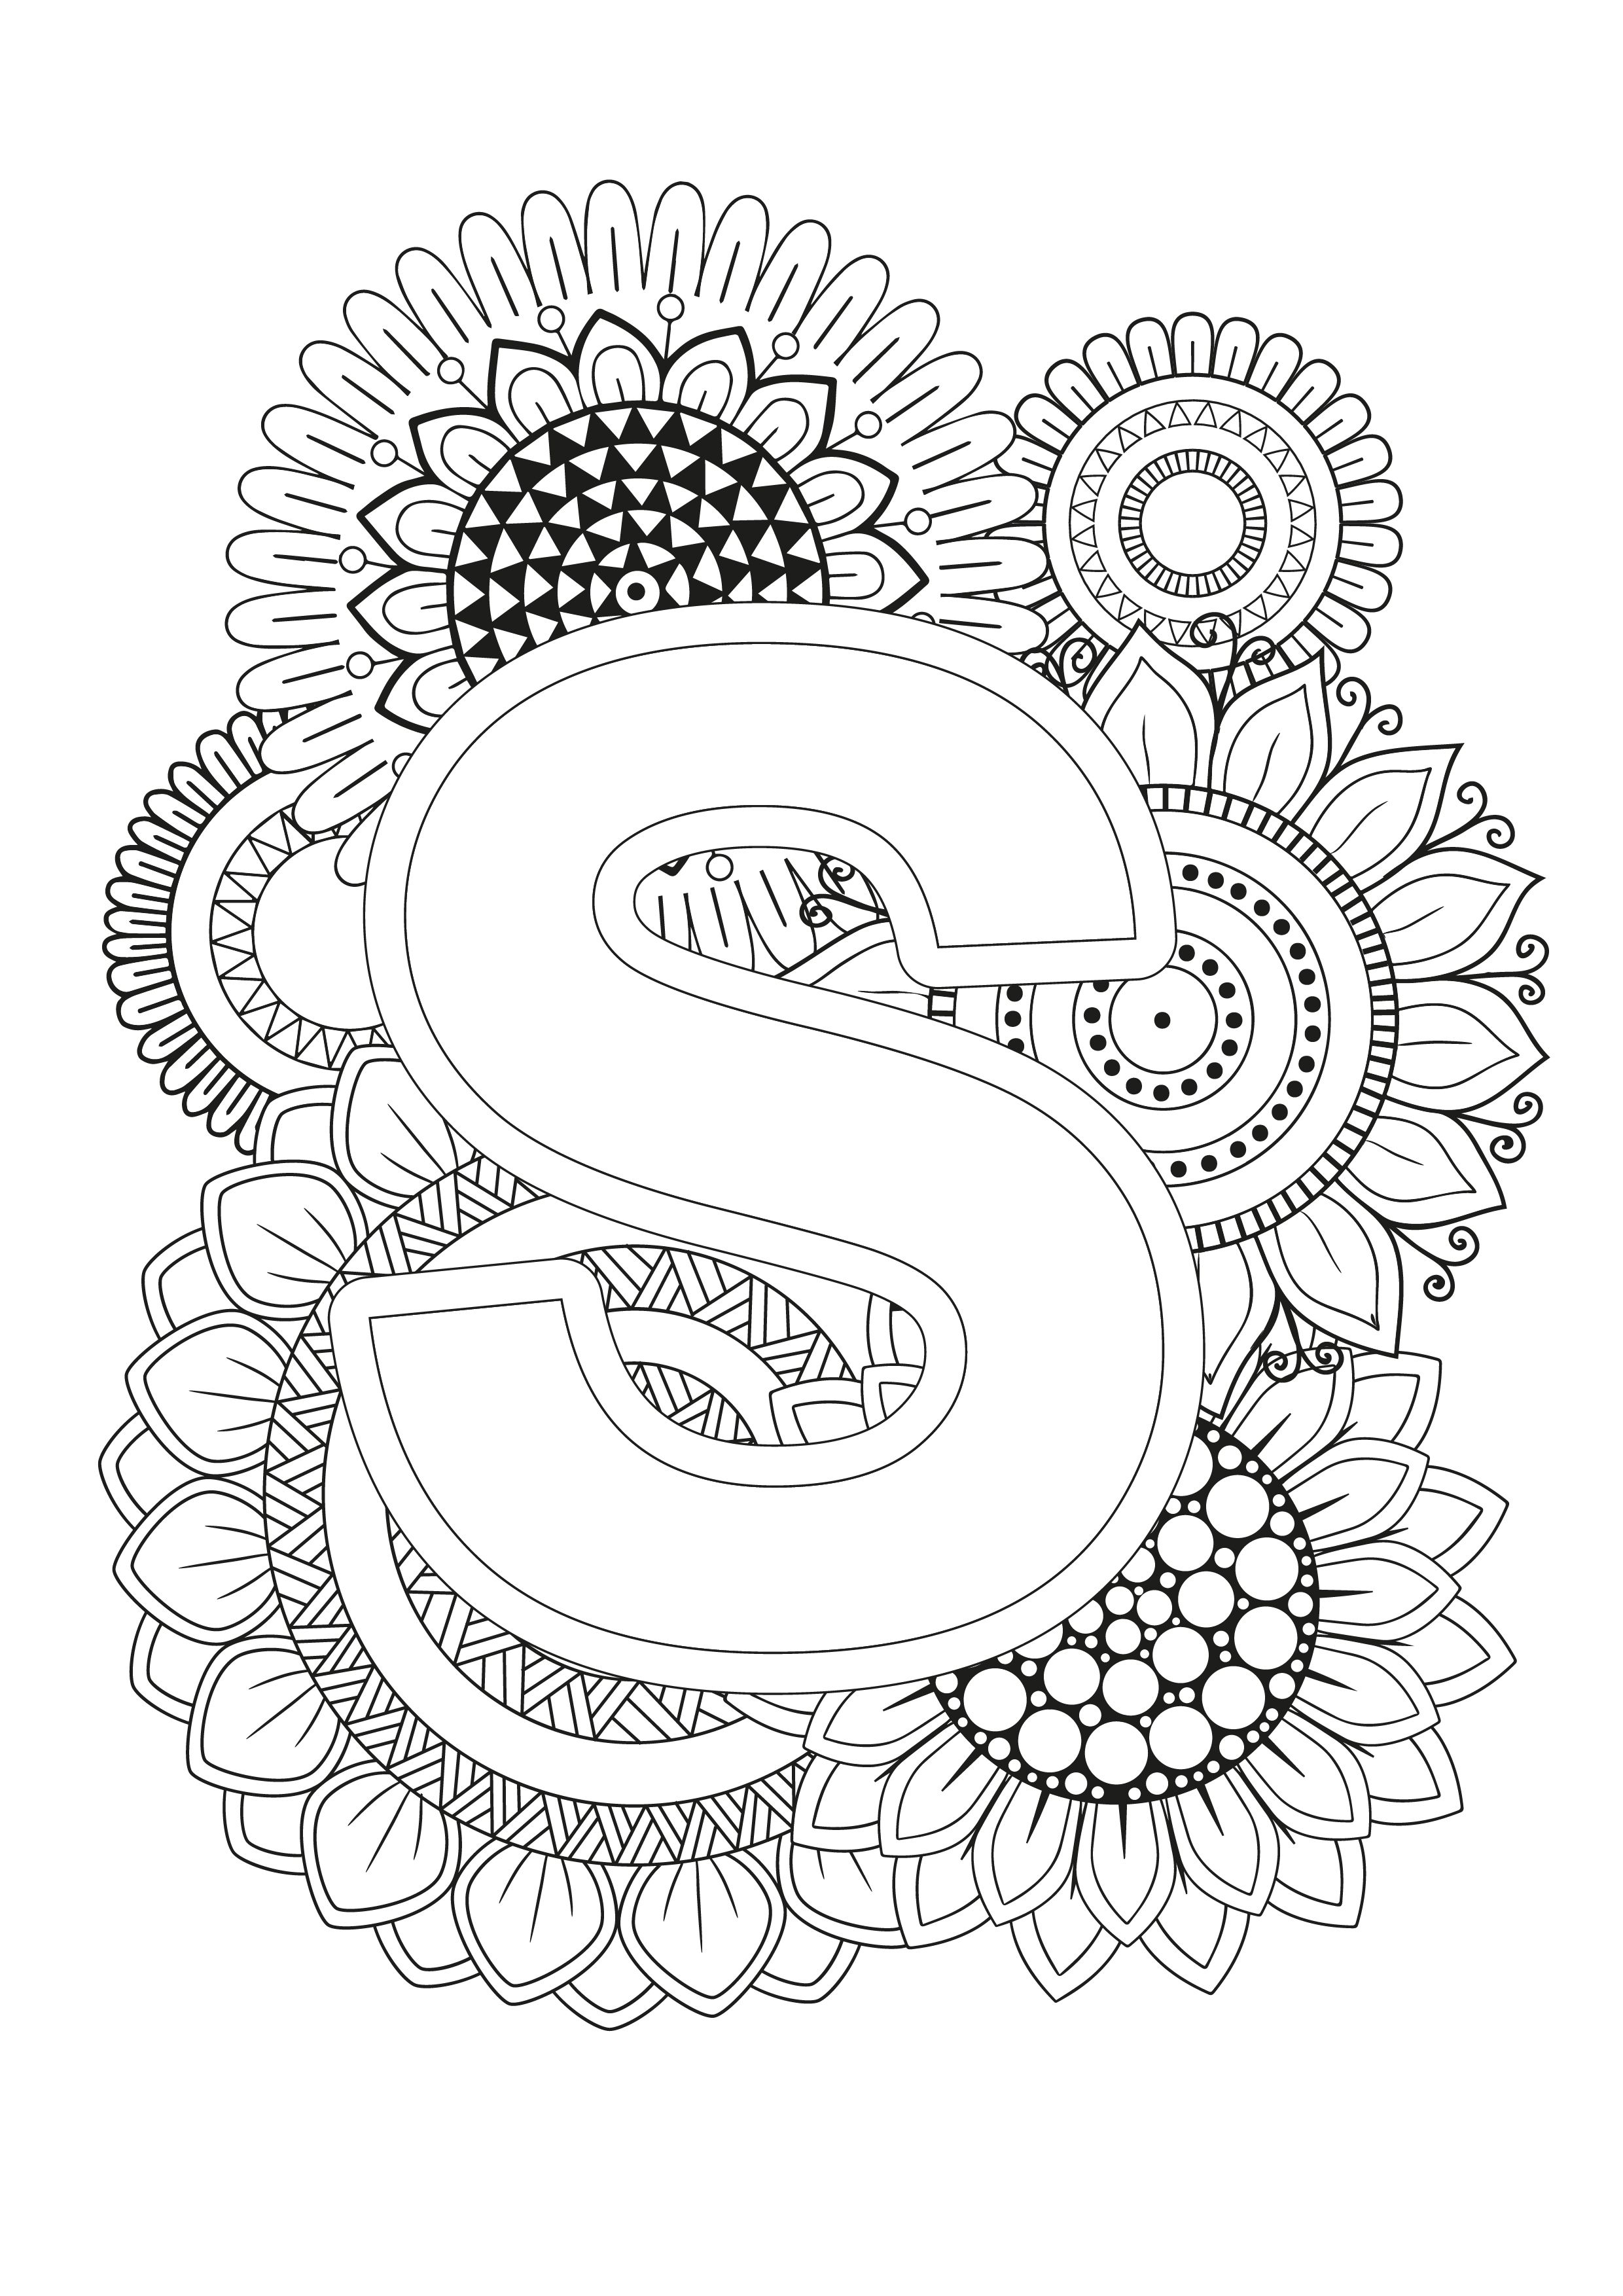 Mindfulness Coloring Page Alphabet Alphabet Coloring Pages Doodle Art Letters Free Coloring Pages